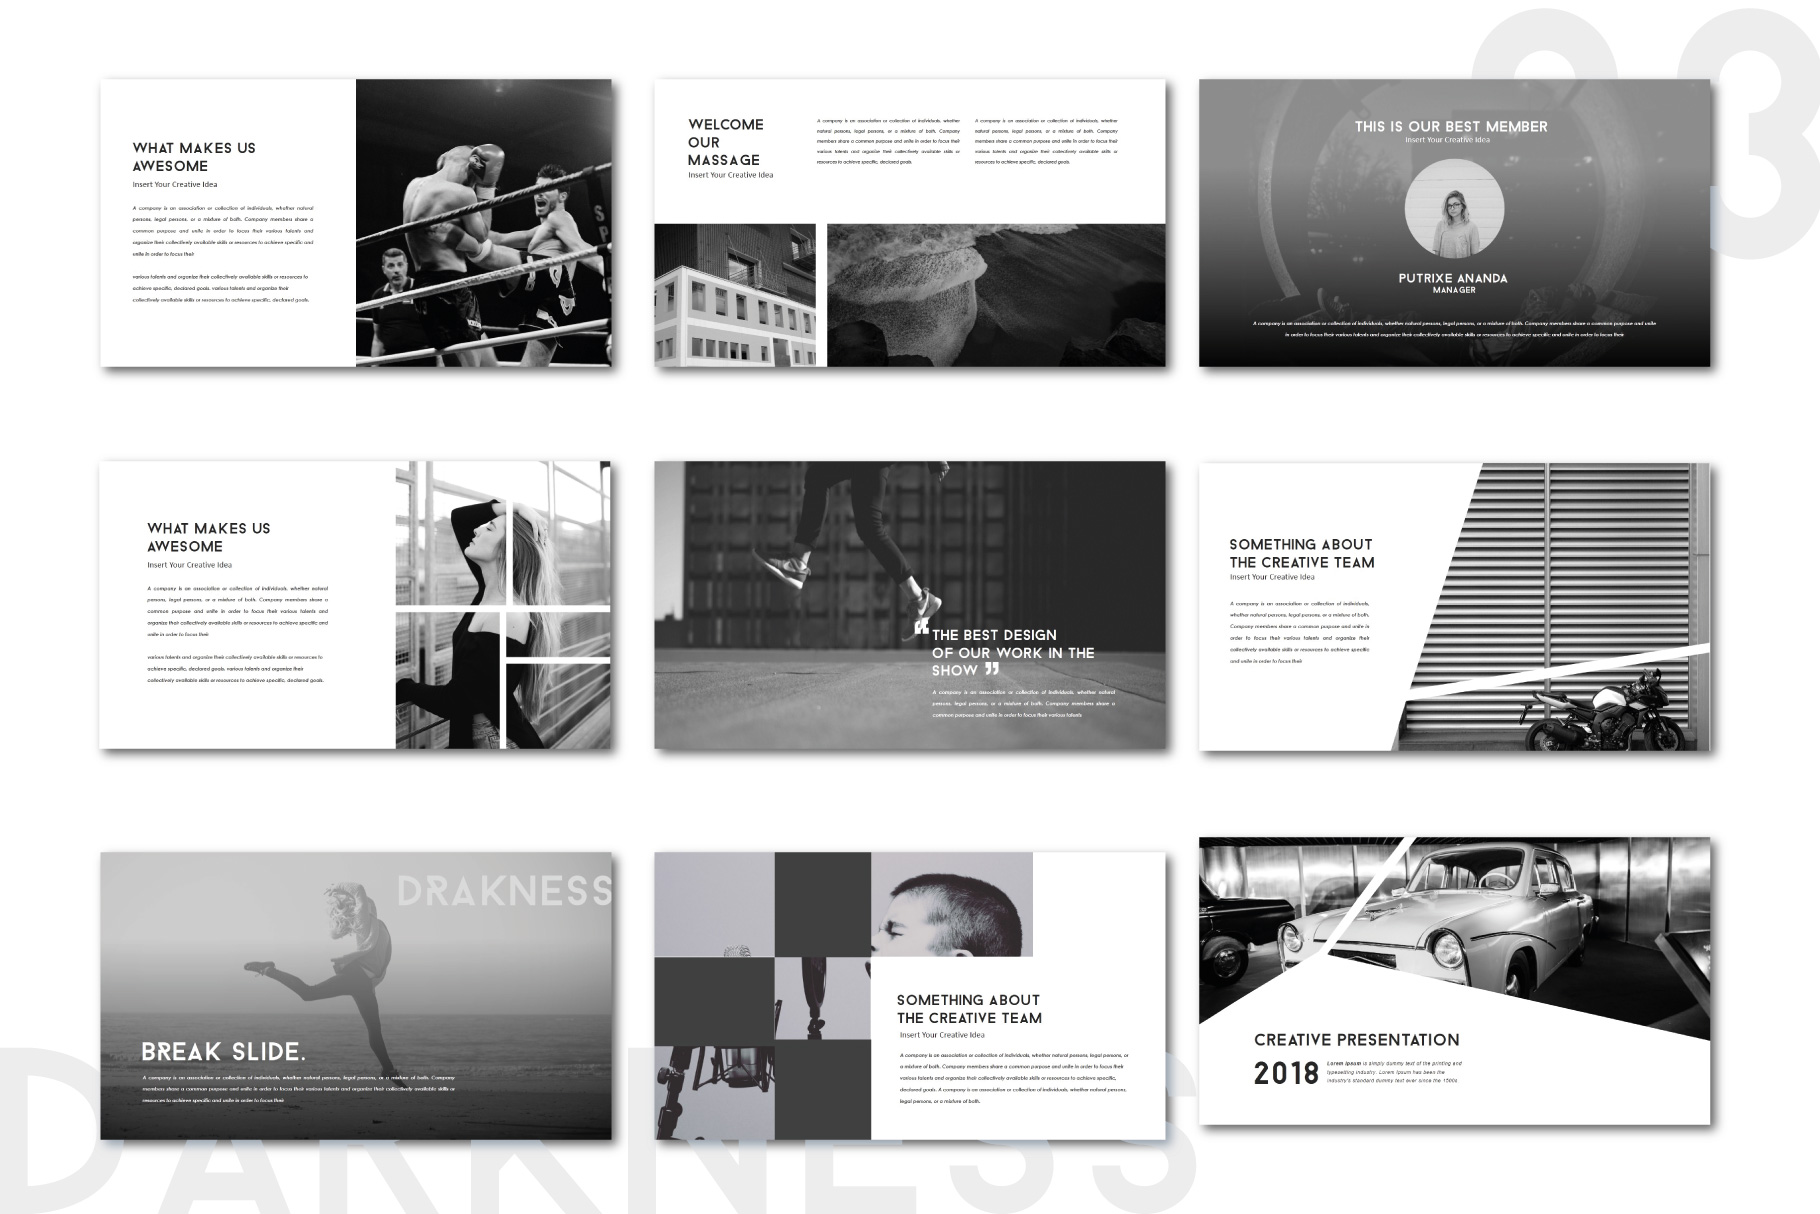 Darkness Multipurpose PowerPoint Templates example image 3